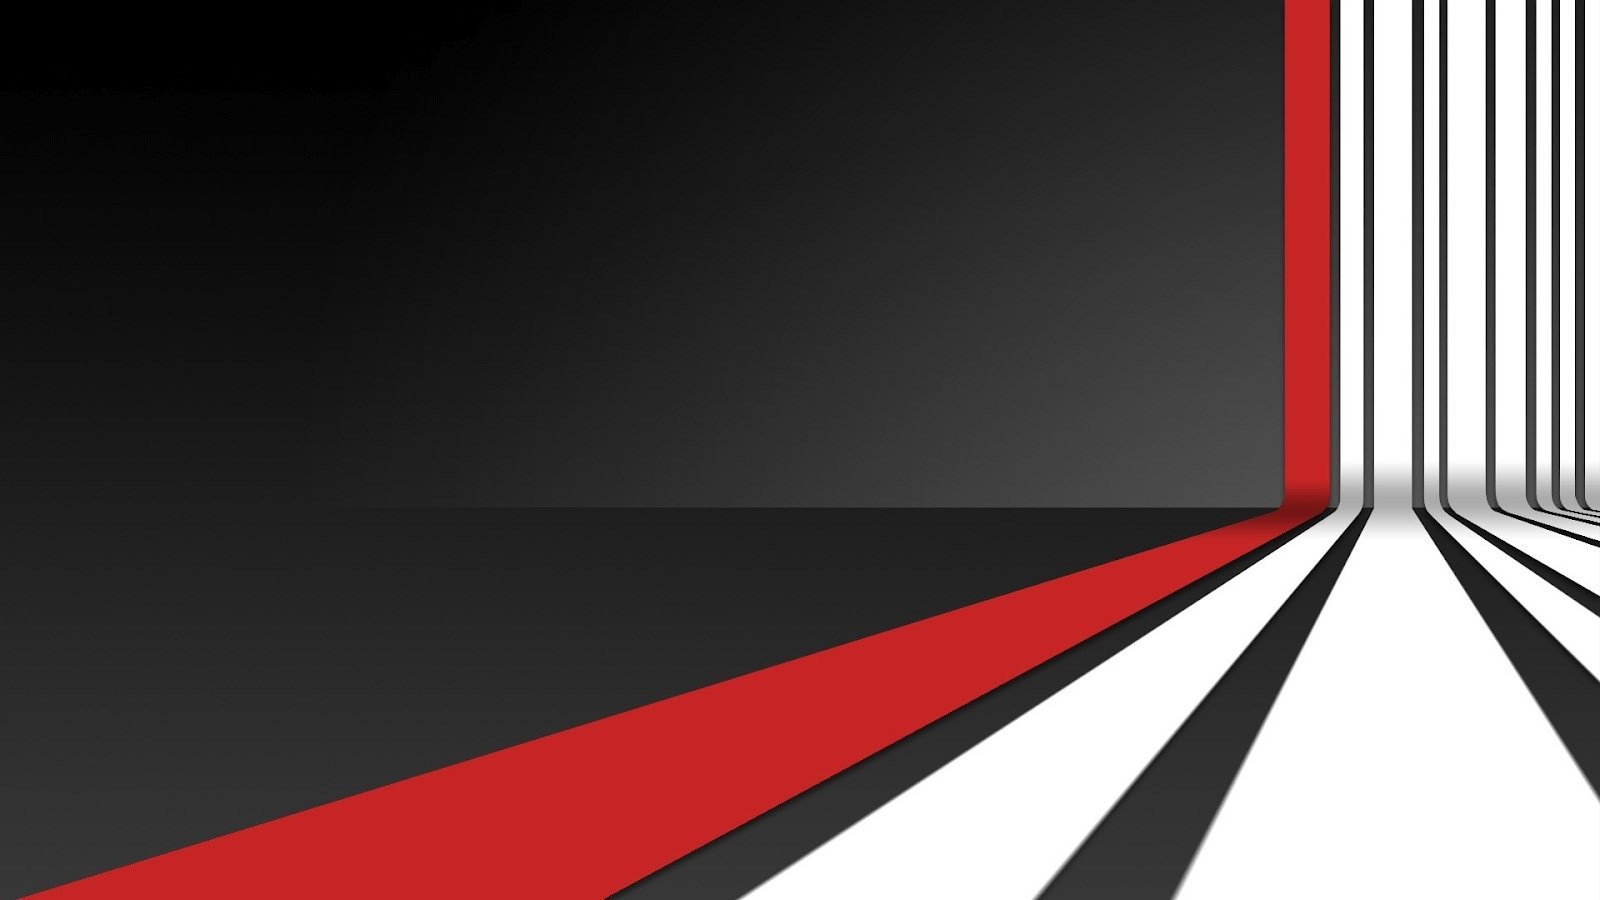 1600x900 Black-and-Red-HD-Wallpapers-White-Line-Backgrounds | Vegas ...